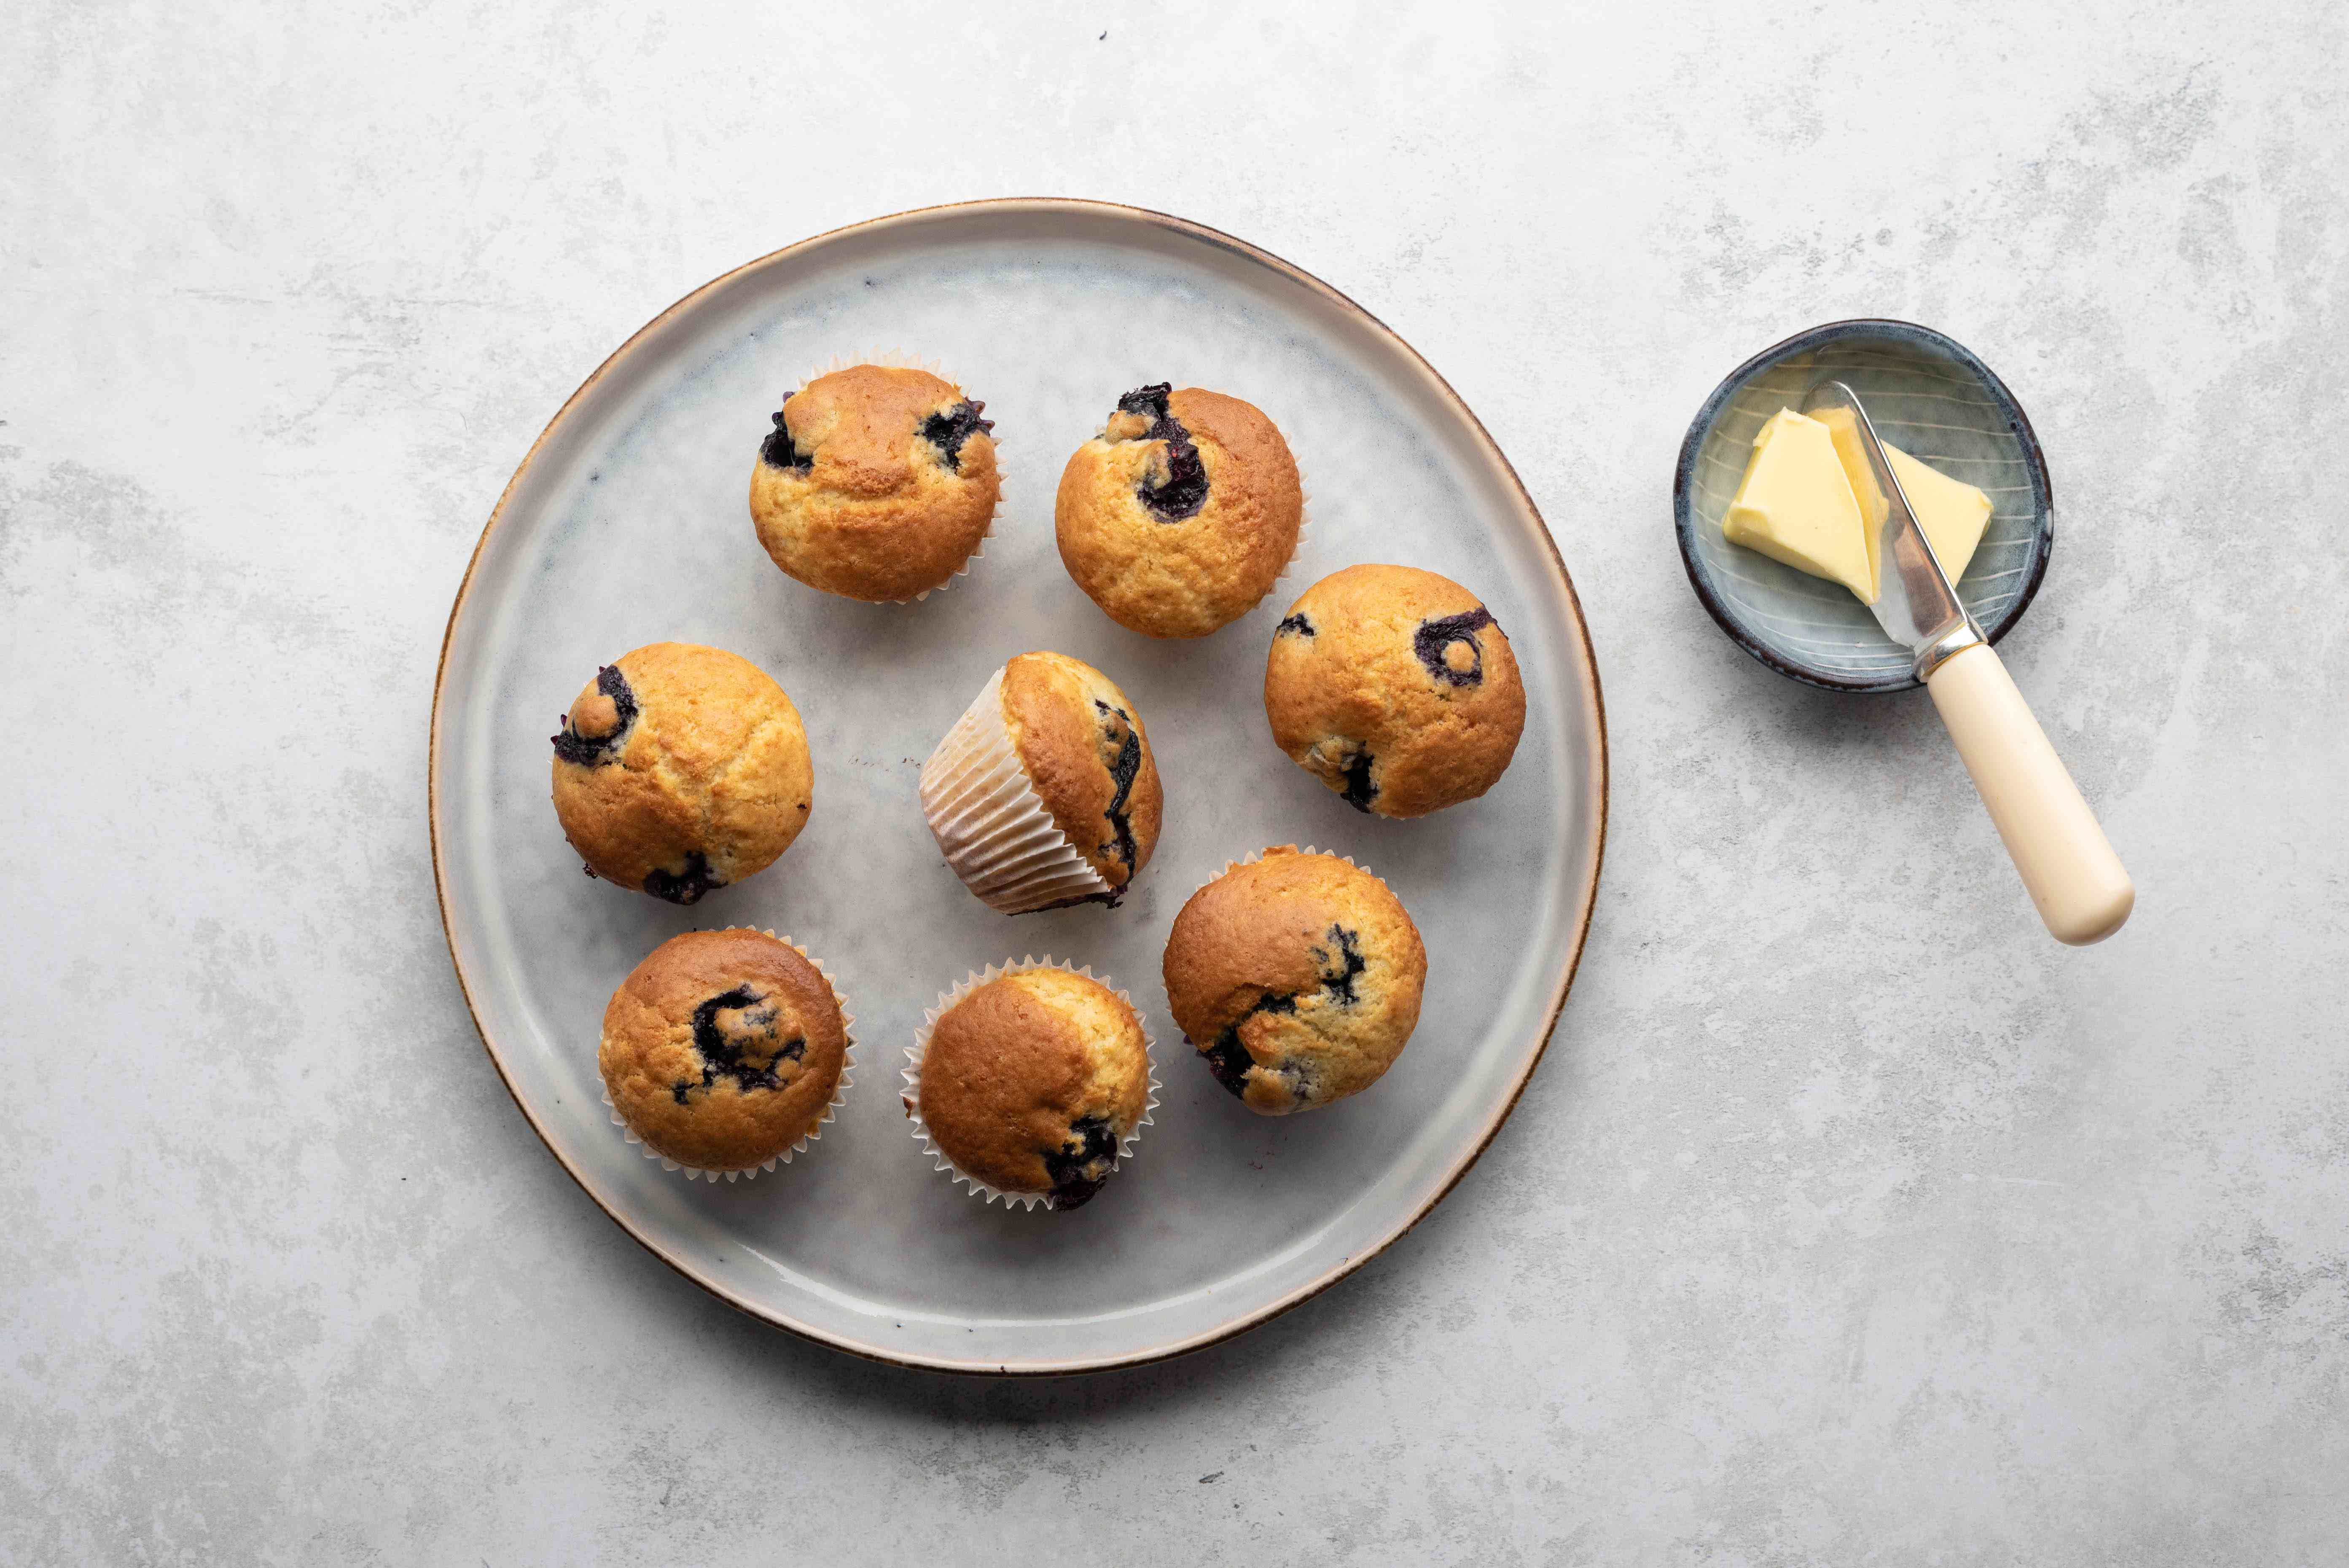 Mini Blueberry Muffins on a plate, served with butter